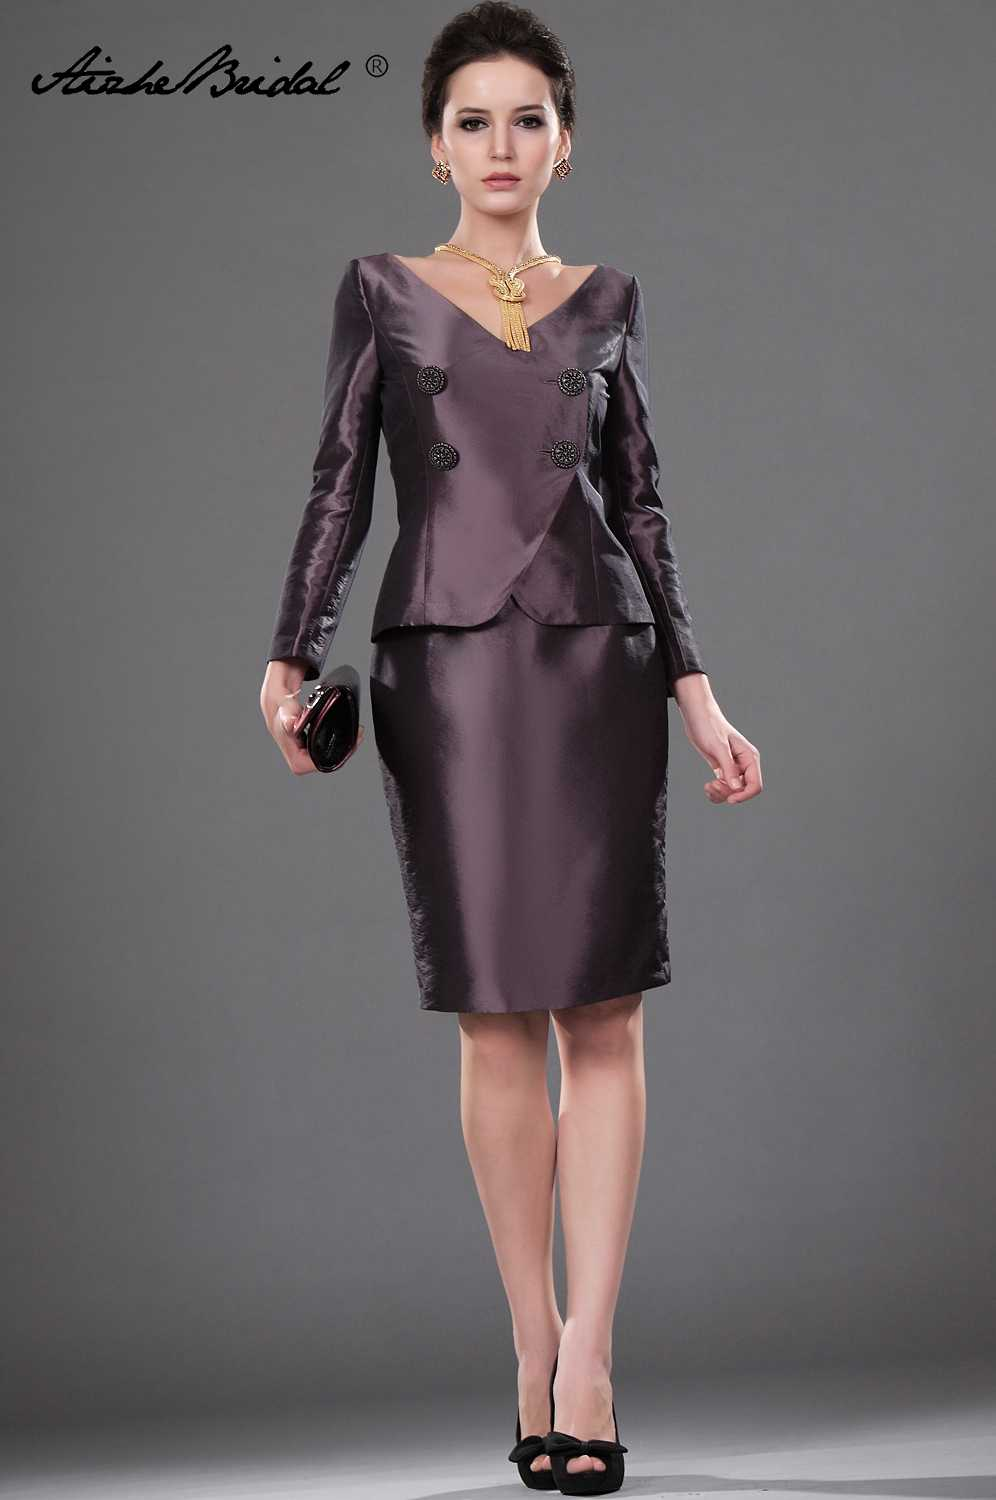 Wedding Party Dress Short Mother Of The Groom Dresses Simple Brown Taffeta  Full Sleeve Jacket Mother 4e1d9d5317c8